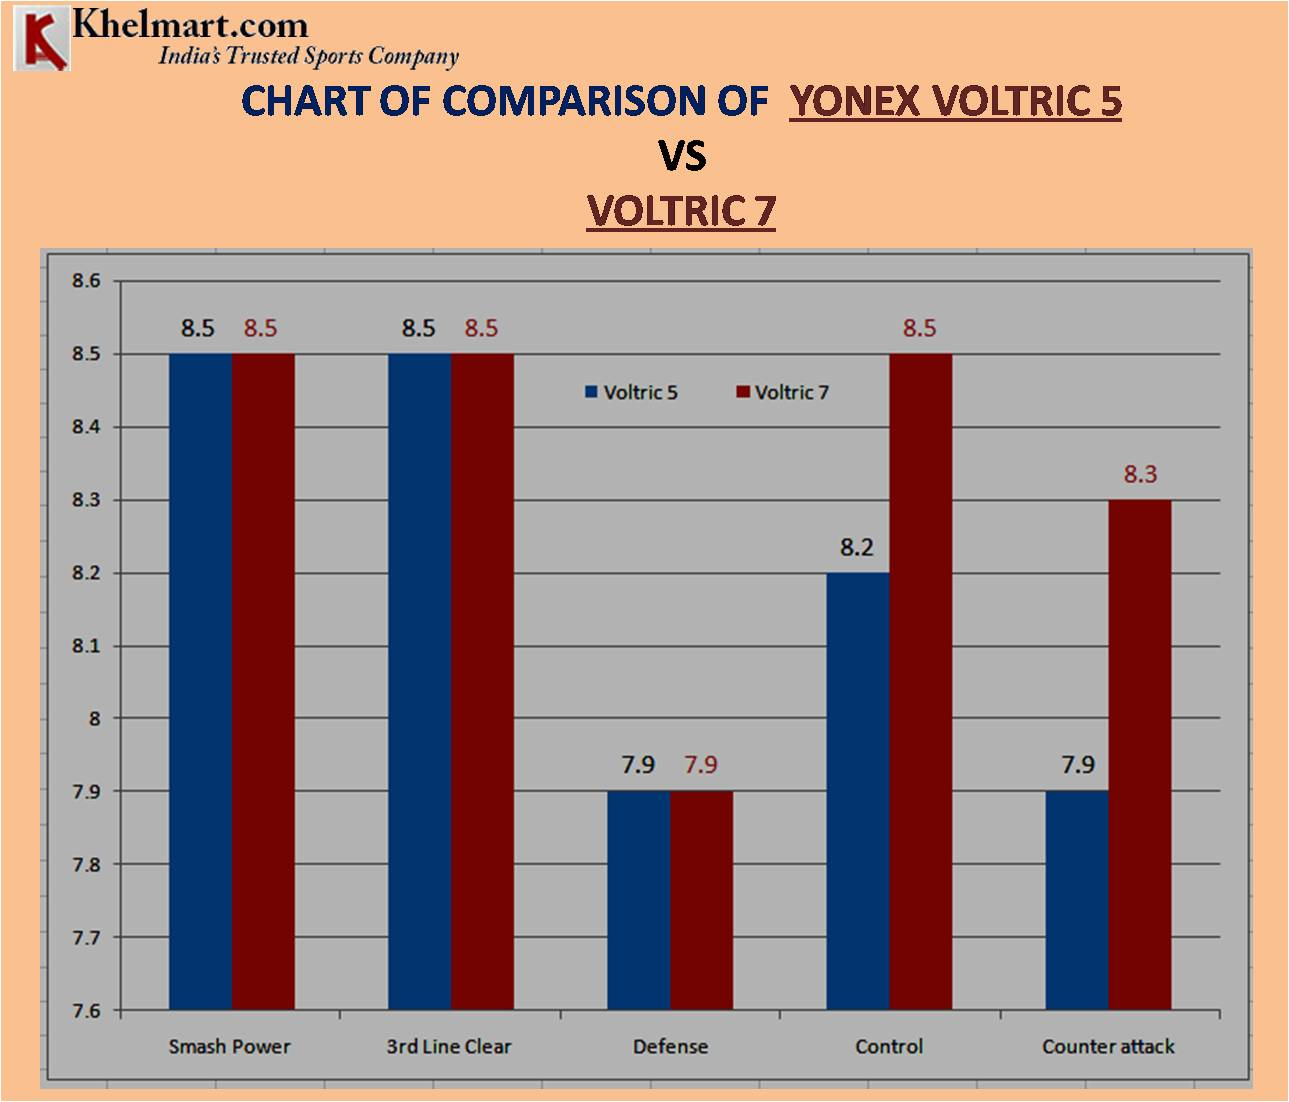 CHART OF COMPARISON OF YONEX VOLTRIC 5 VS VOLTRIC 7